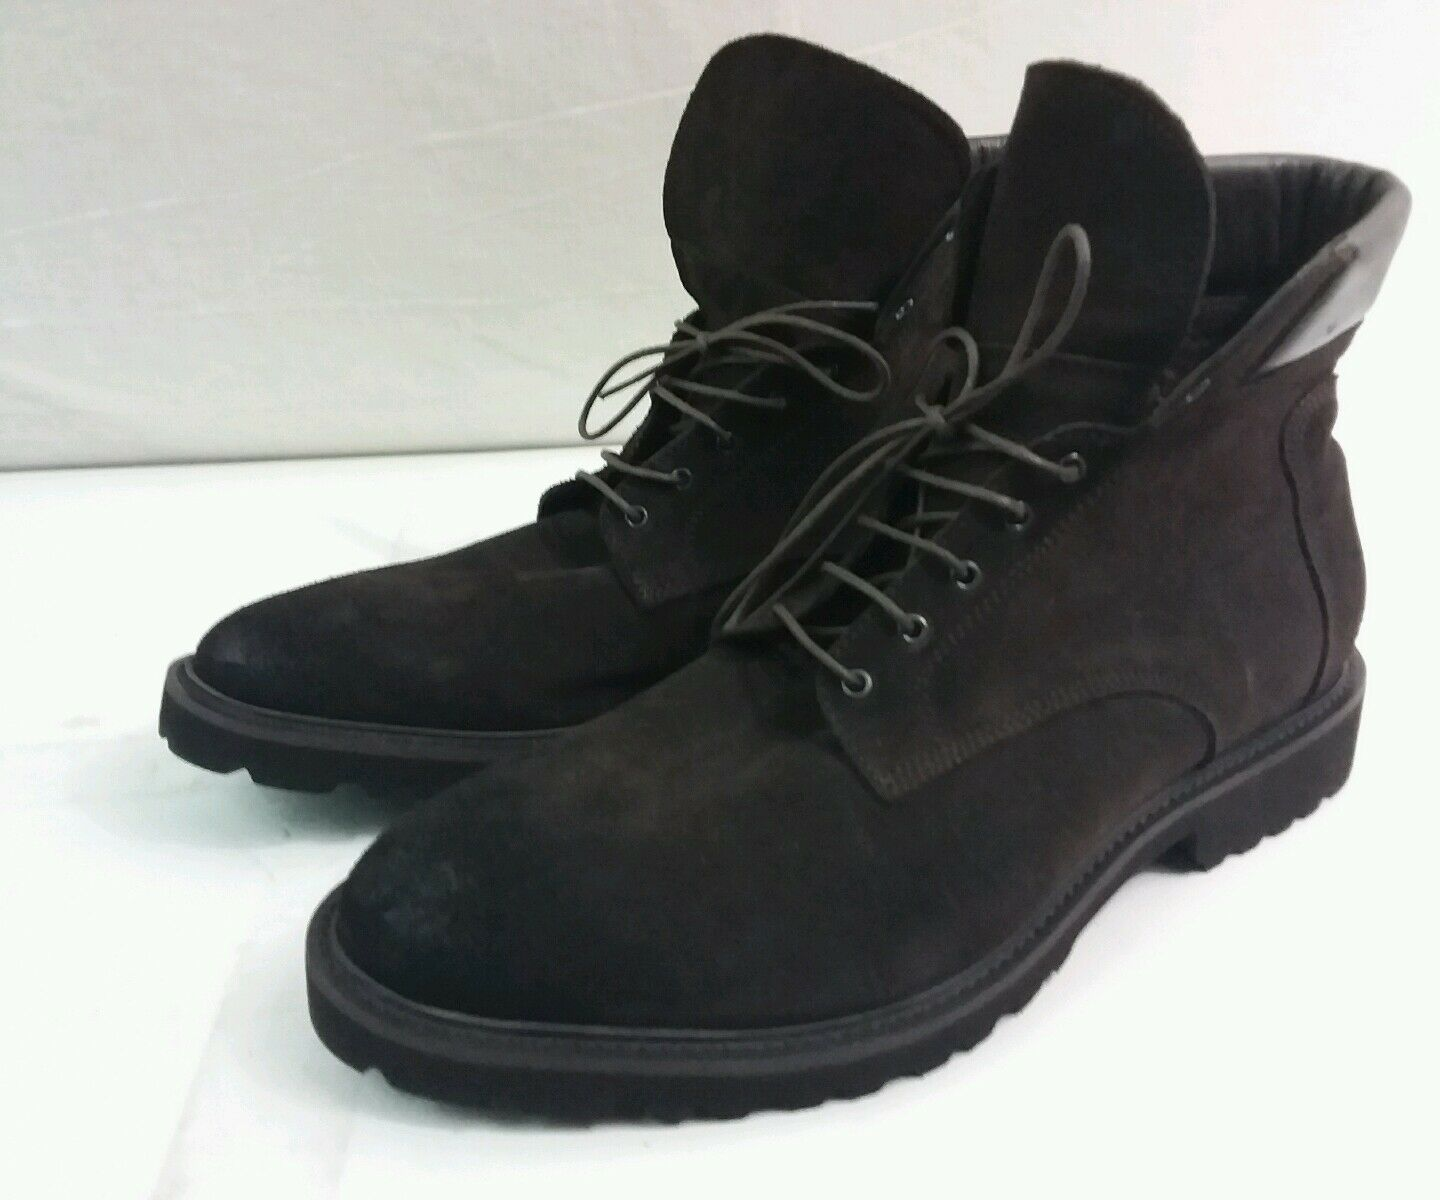 New TO BOOT NEW YORK Men's Choc Brown Suede Ankle boots, 10